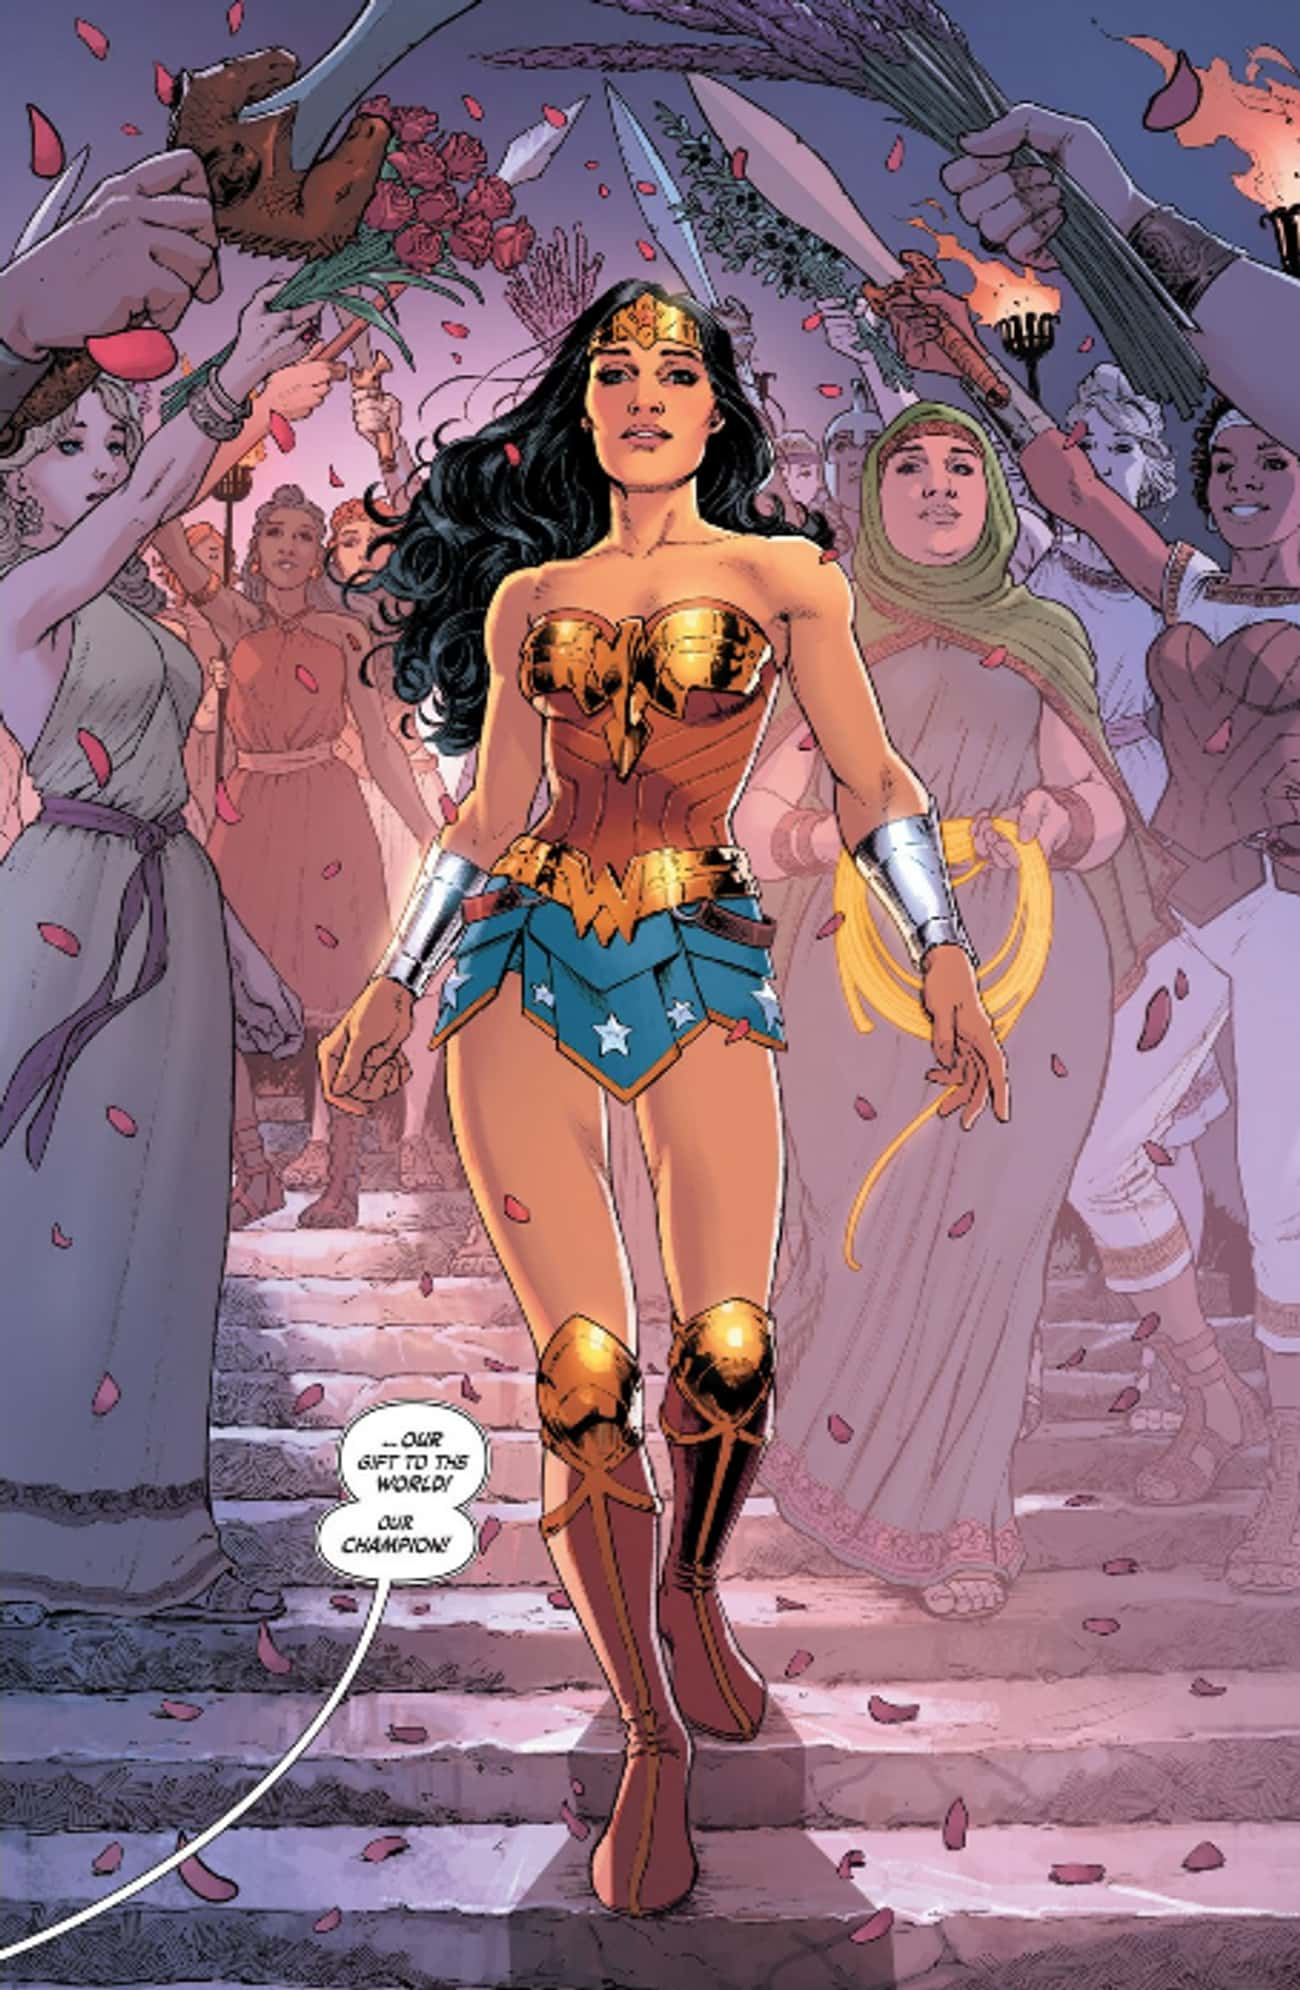 Nicola Scott's DC Rebirth  is listed (or ranked) 2 on the list Wonder Woman's Costumes From The Comics, Ranked By Practicality